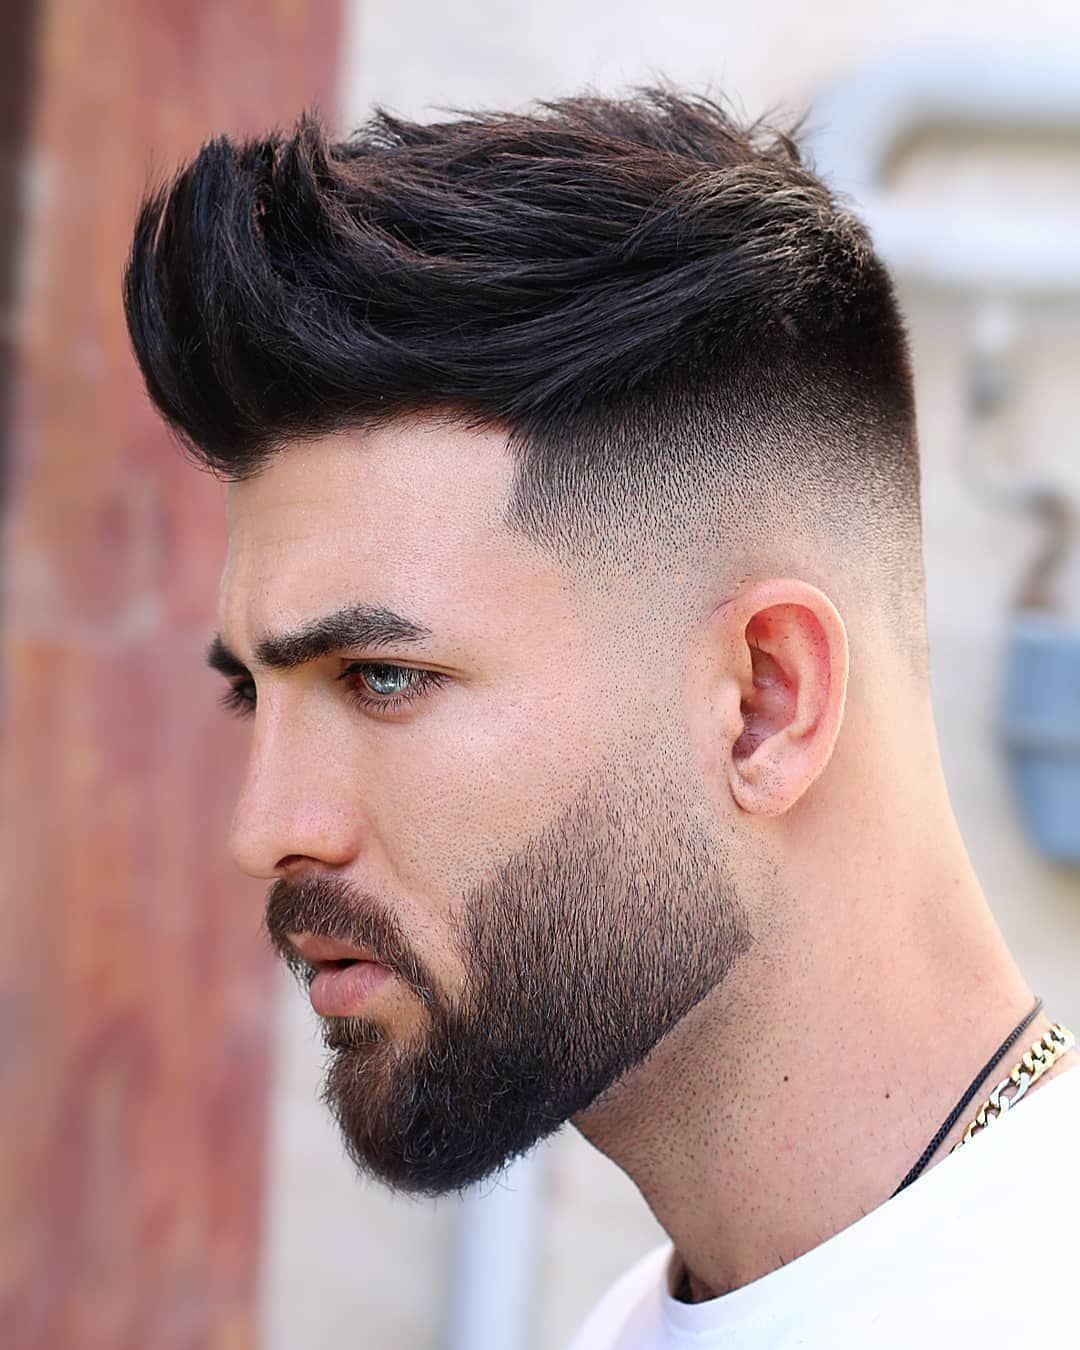 Trending Haircuts For Men In 2020 In 2020 Haircuts For Men Hair